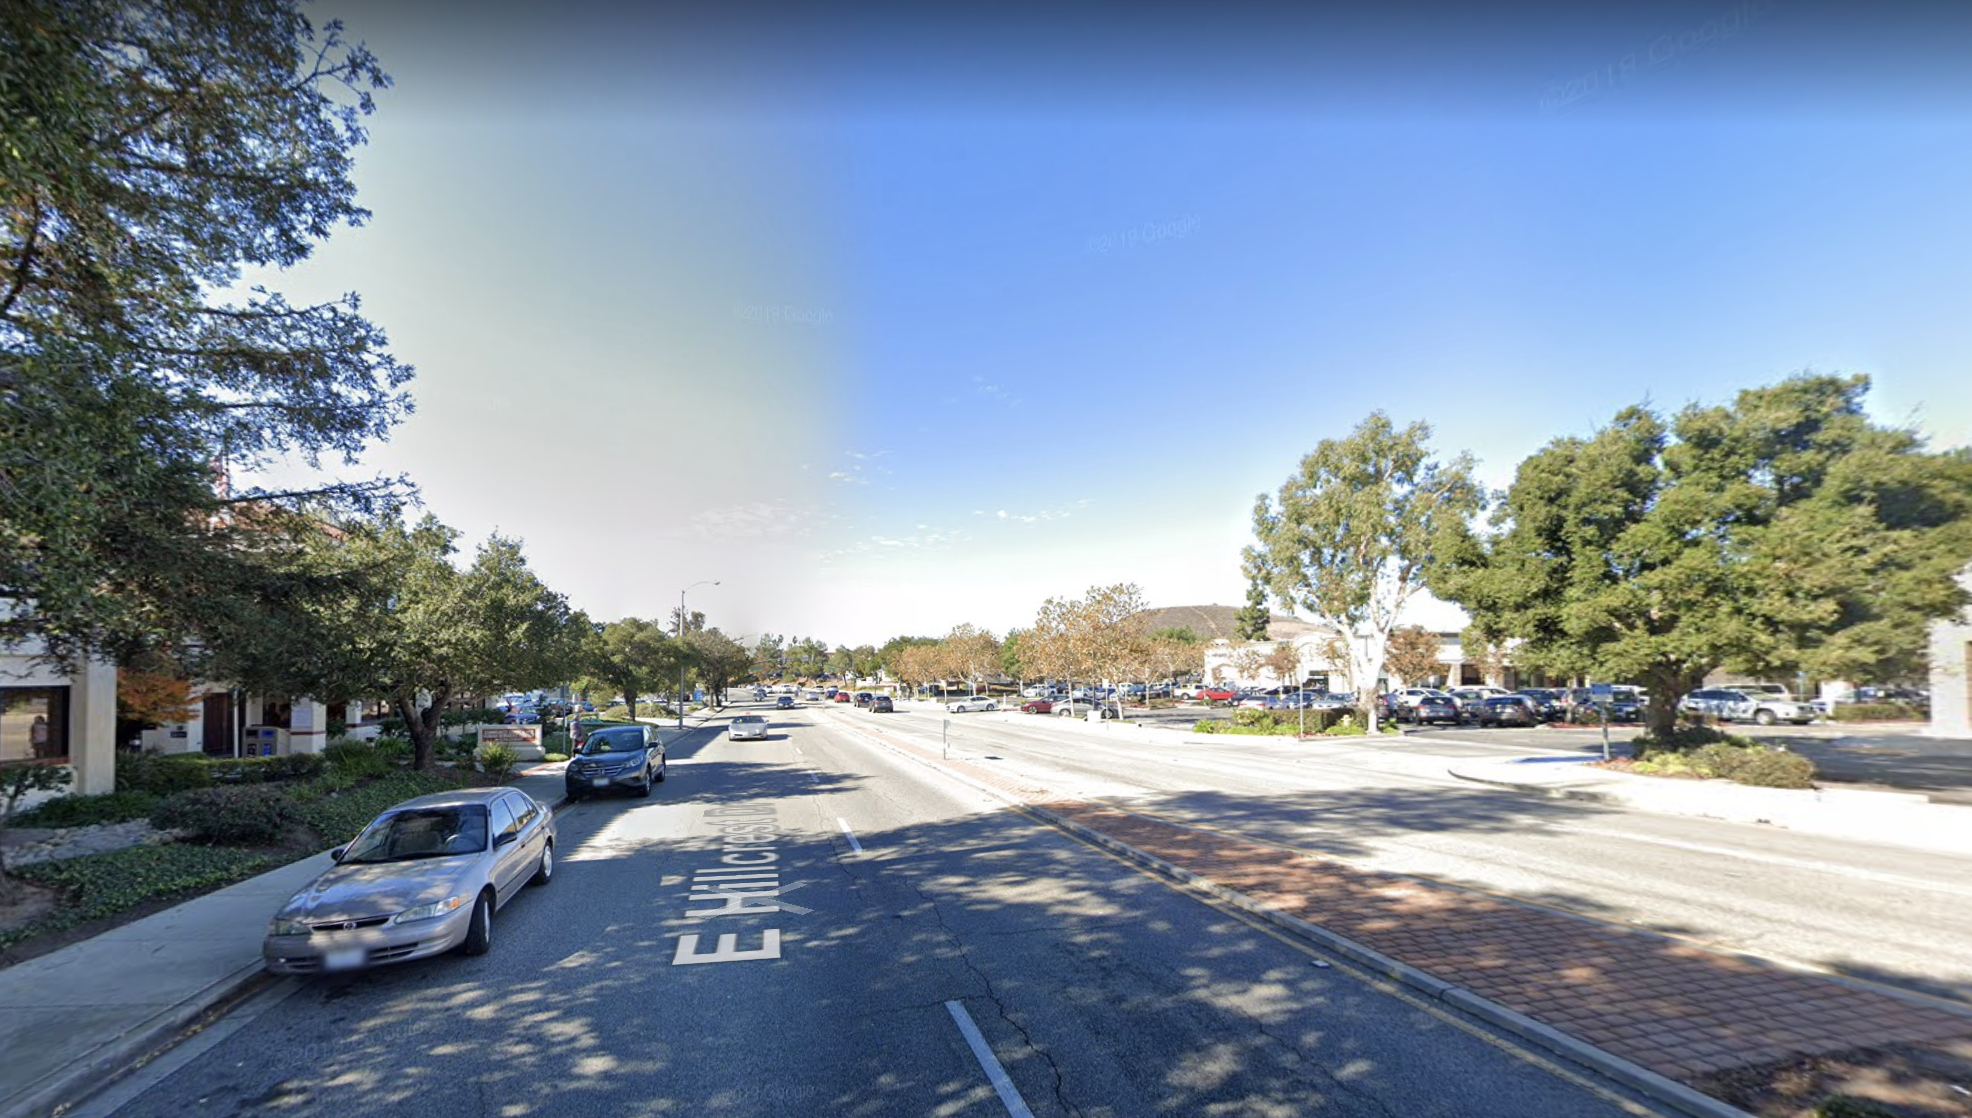 The area of 80 E. Hillcrest Drive in Thousand Oaks appears in this image from Google Maps' street view.